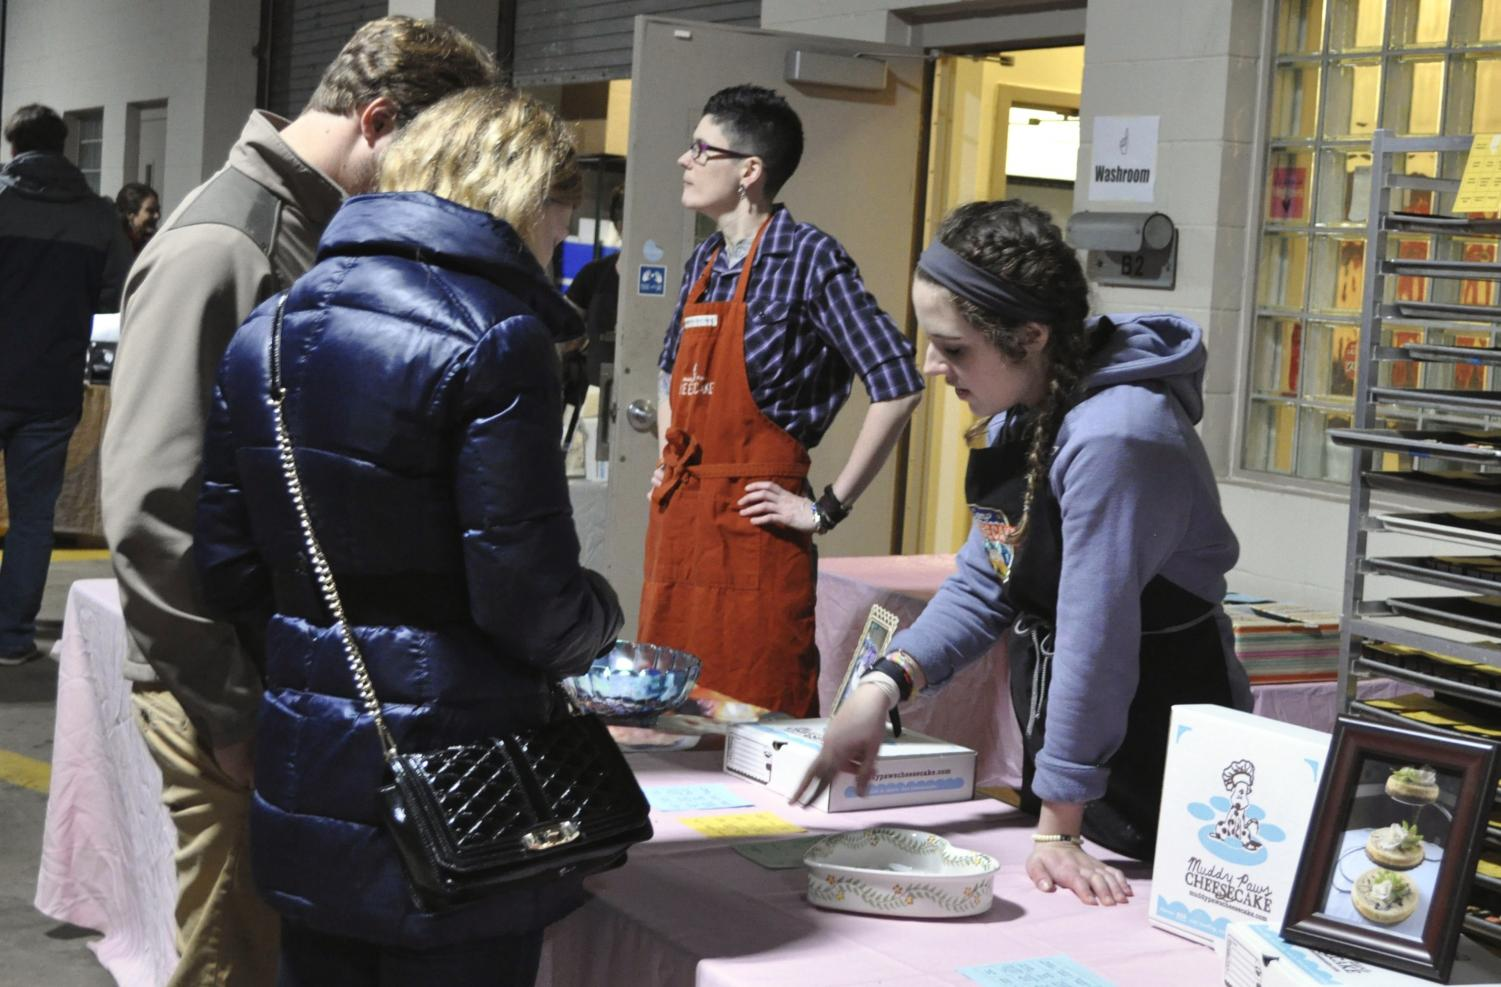 A Muddy Paws Cheesecake employee shows donation participants the different trays available with free samples. Each person who donated a toy or dog food could sample cheesecakes for free.